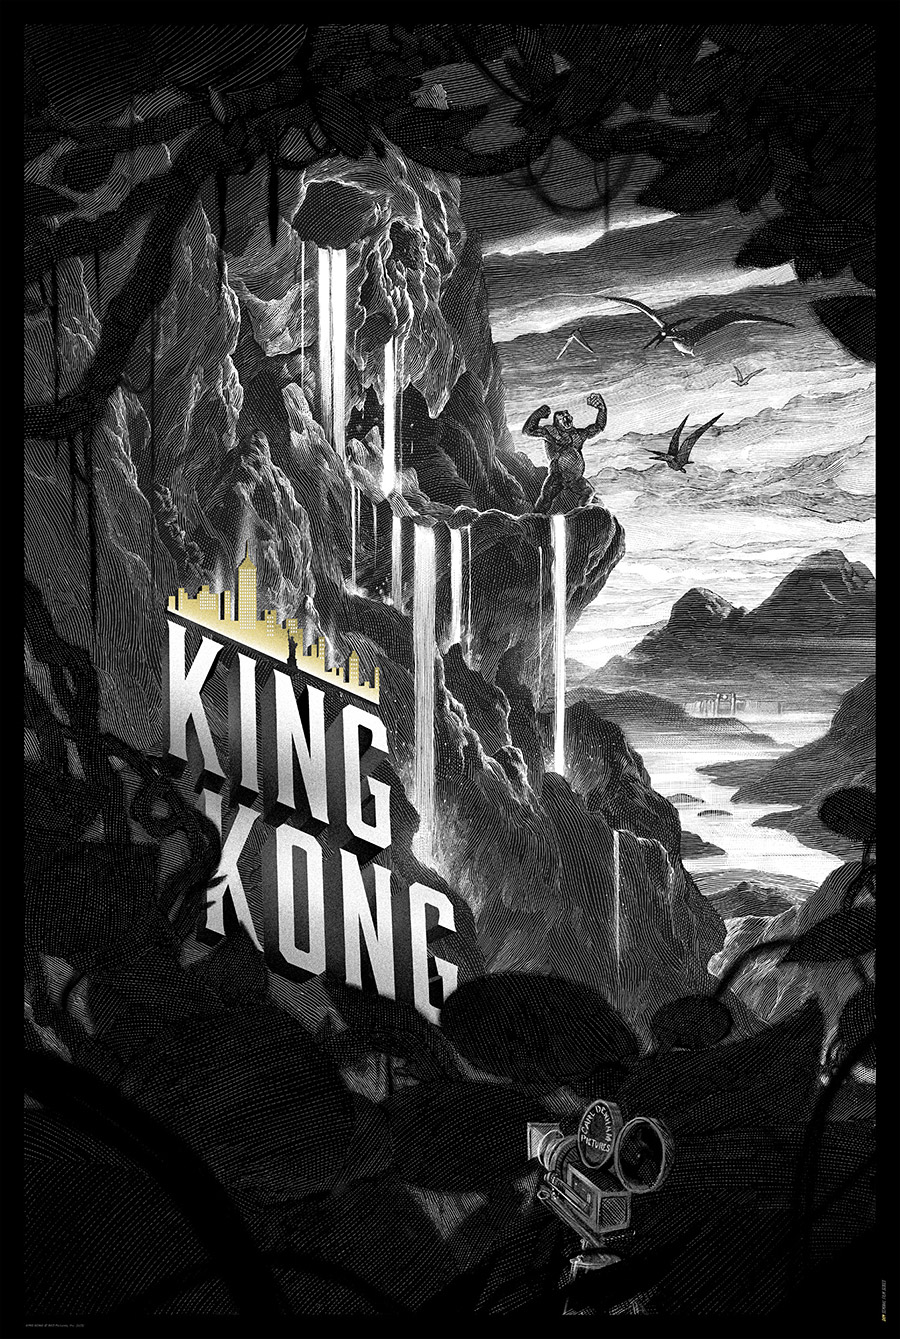 King Kong Posters from Nicolas Delort